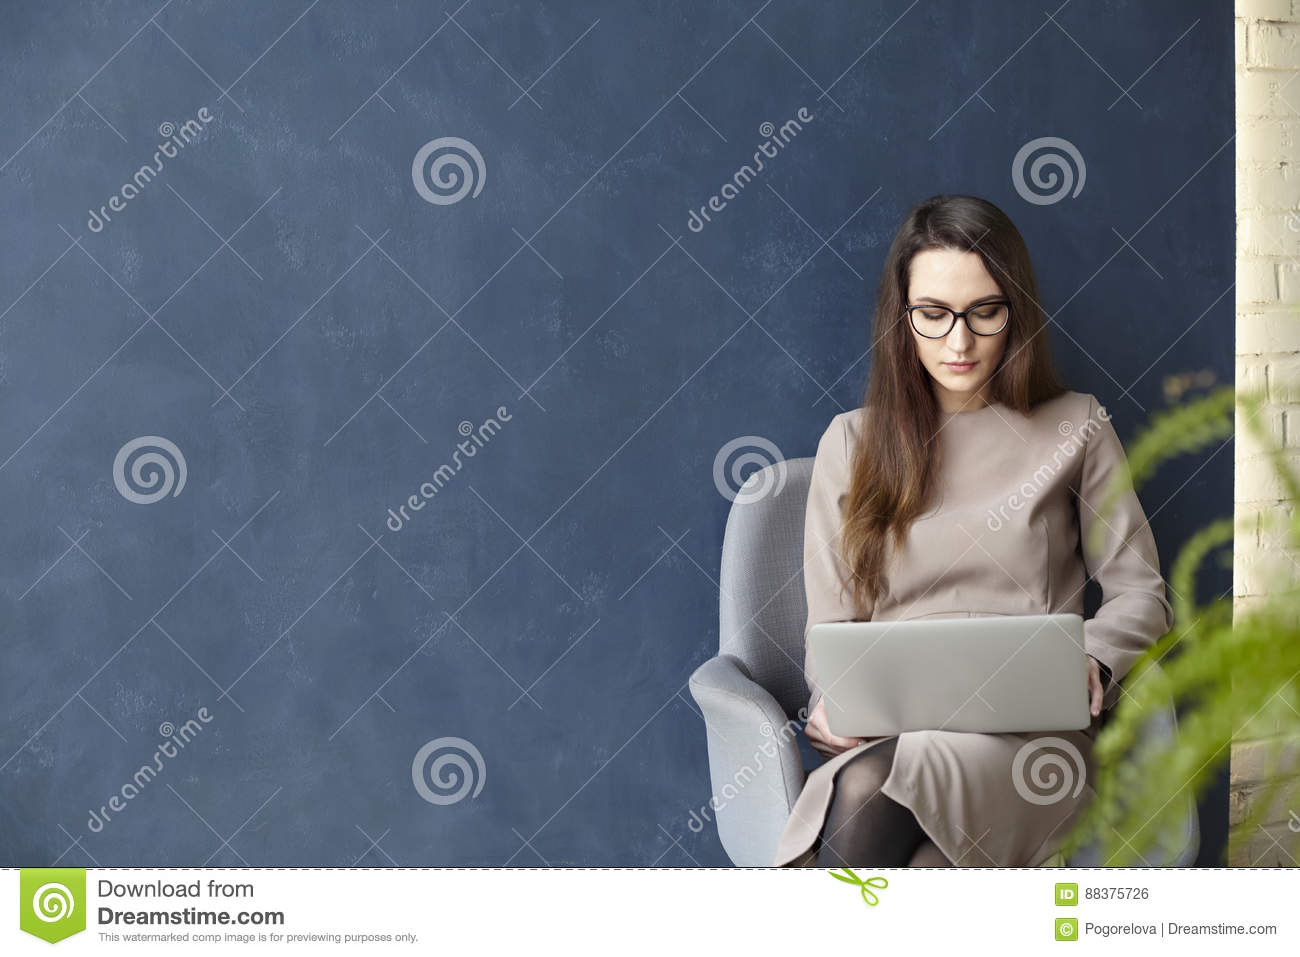 Beautiful businesswoman working on laptop while sitting in modern loft office. Dark blue wall background, day light.